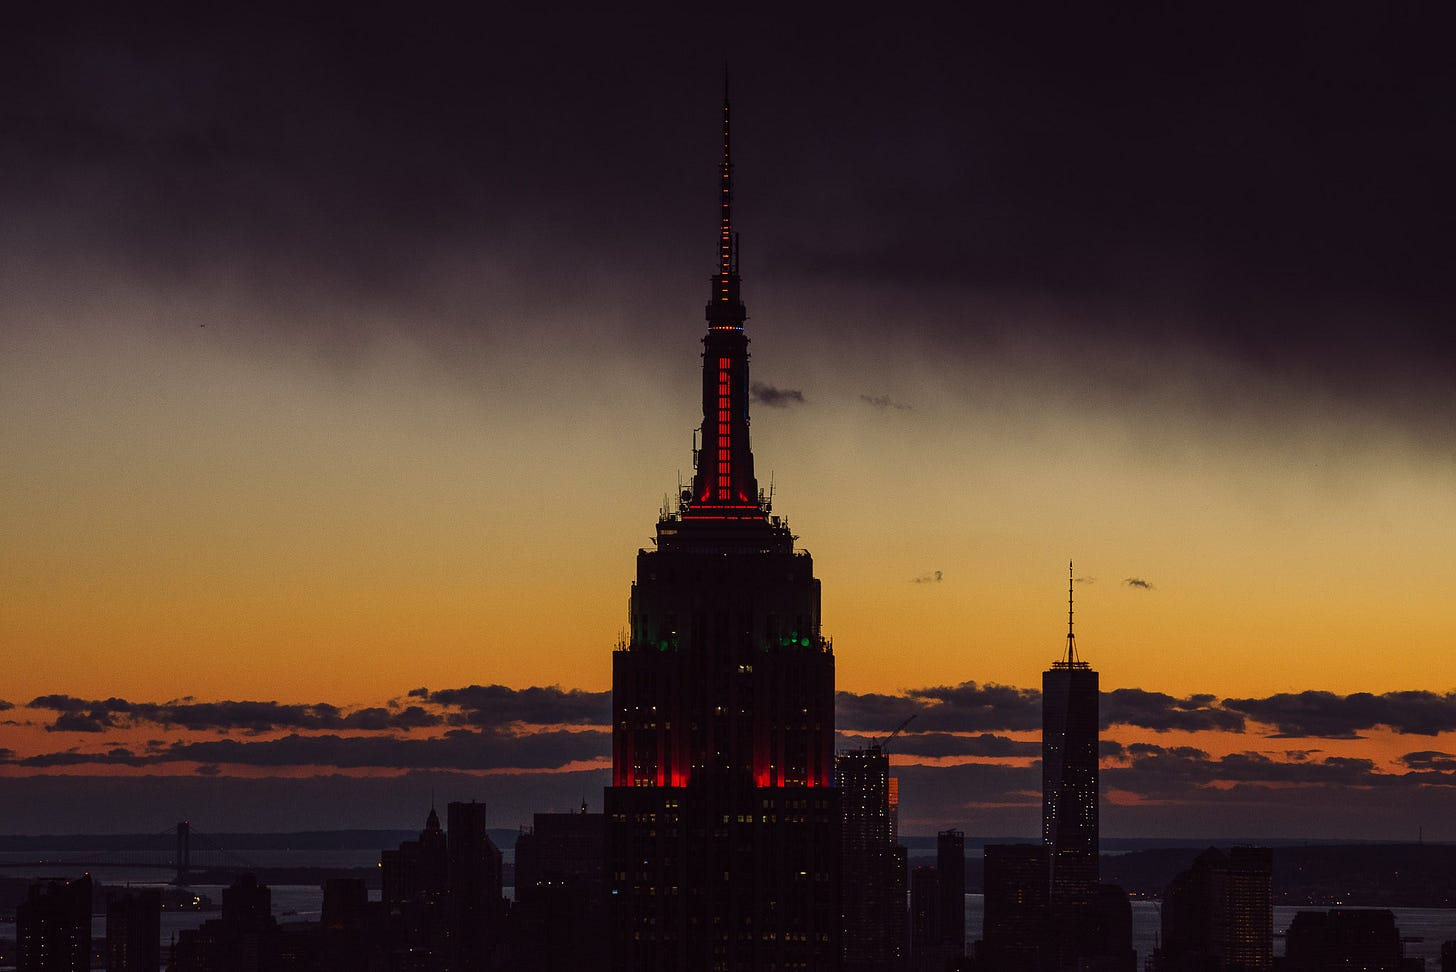 Sunset with the top of the Empire State Building in the centre of the image.